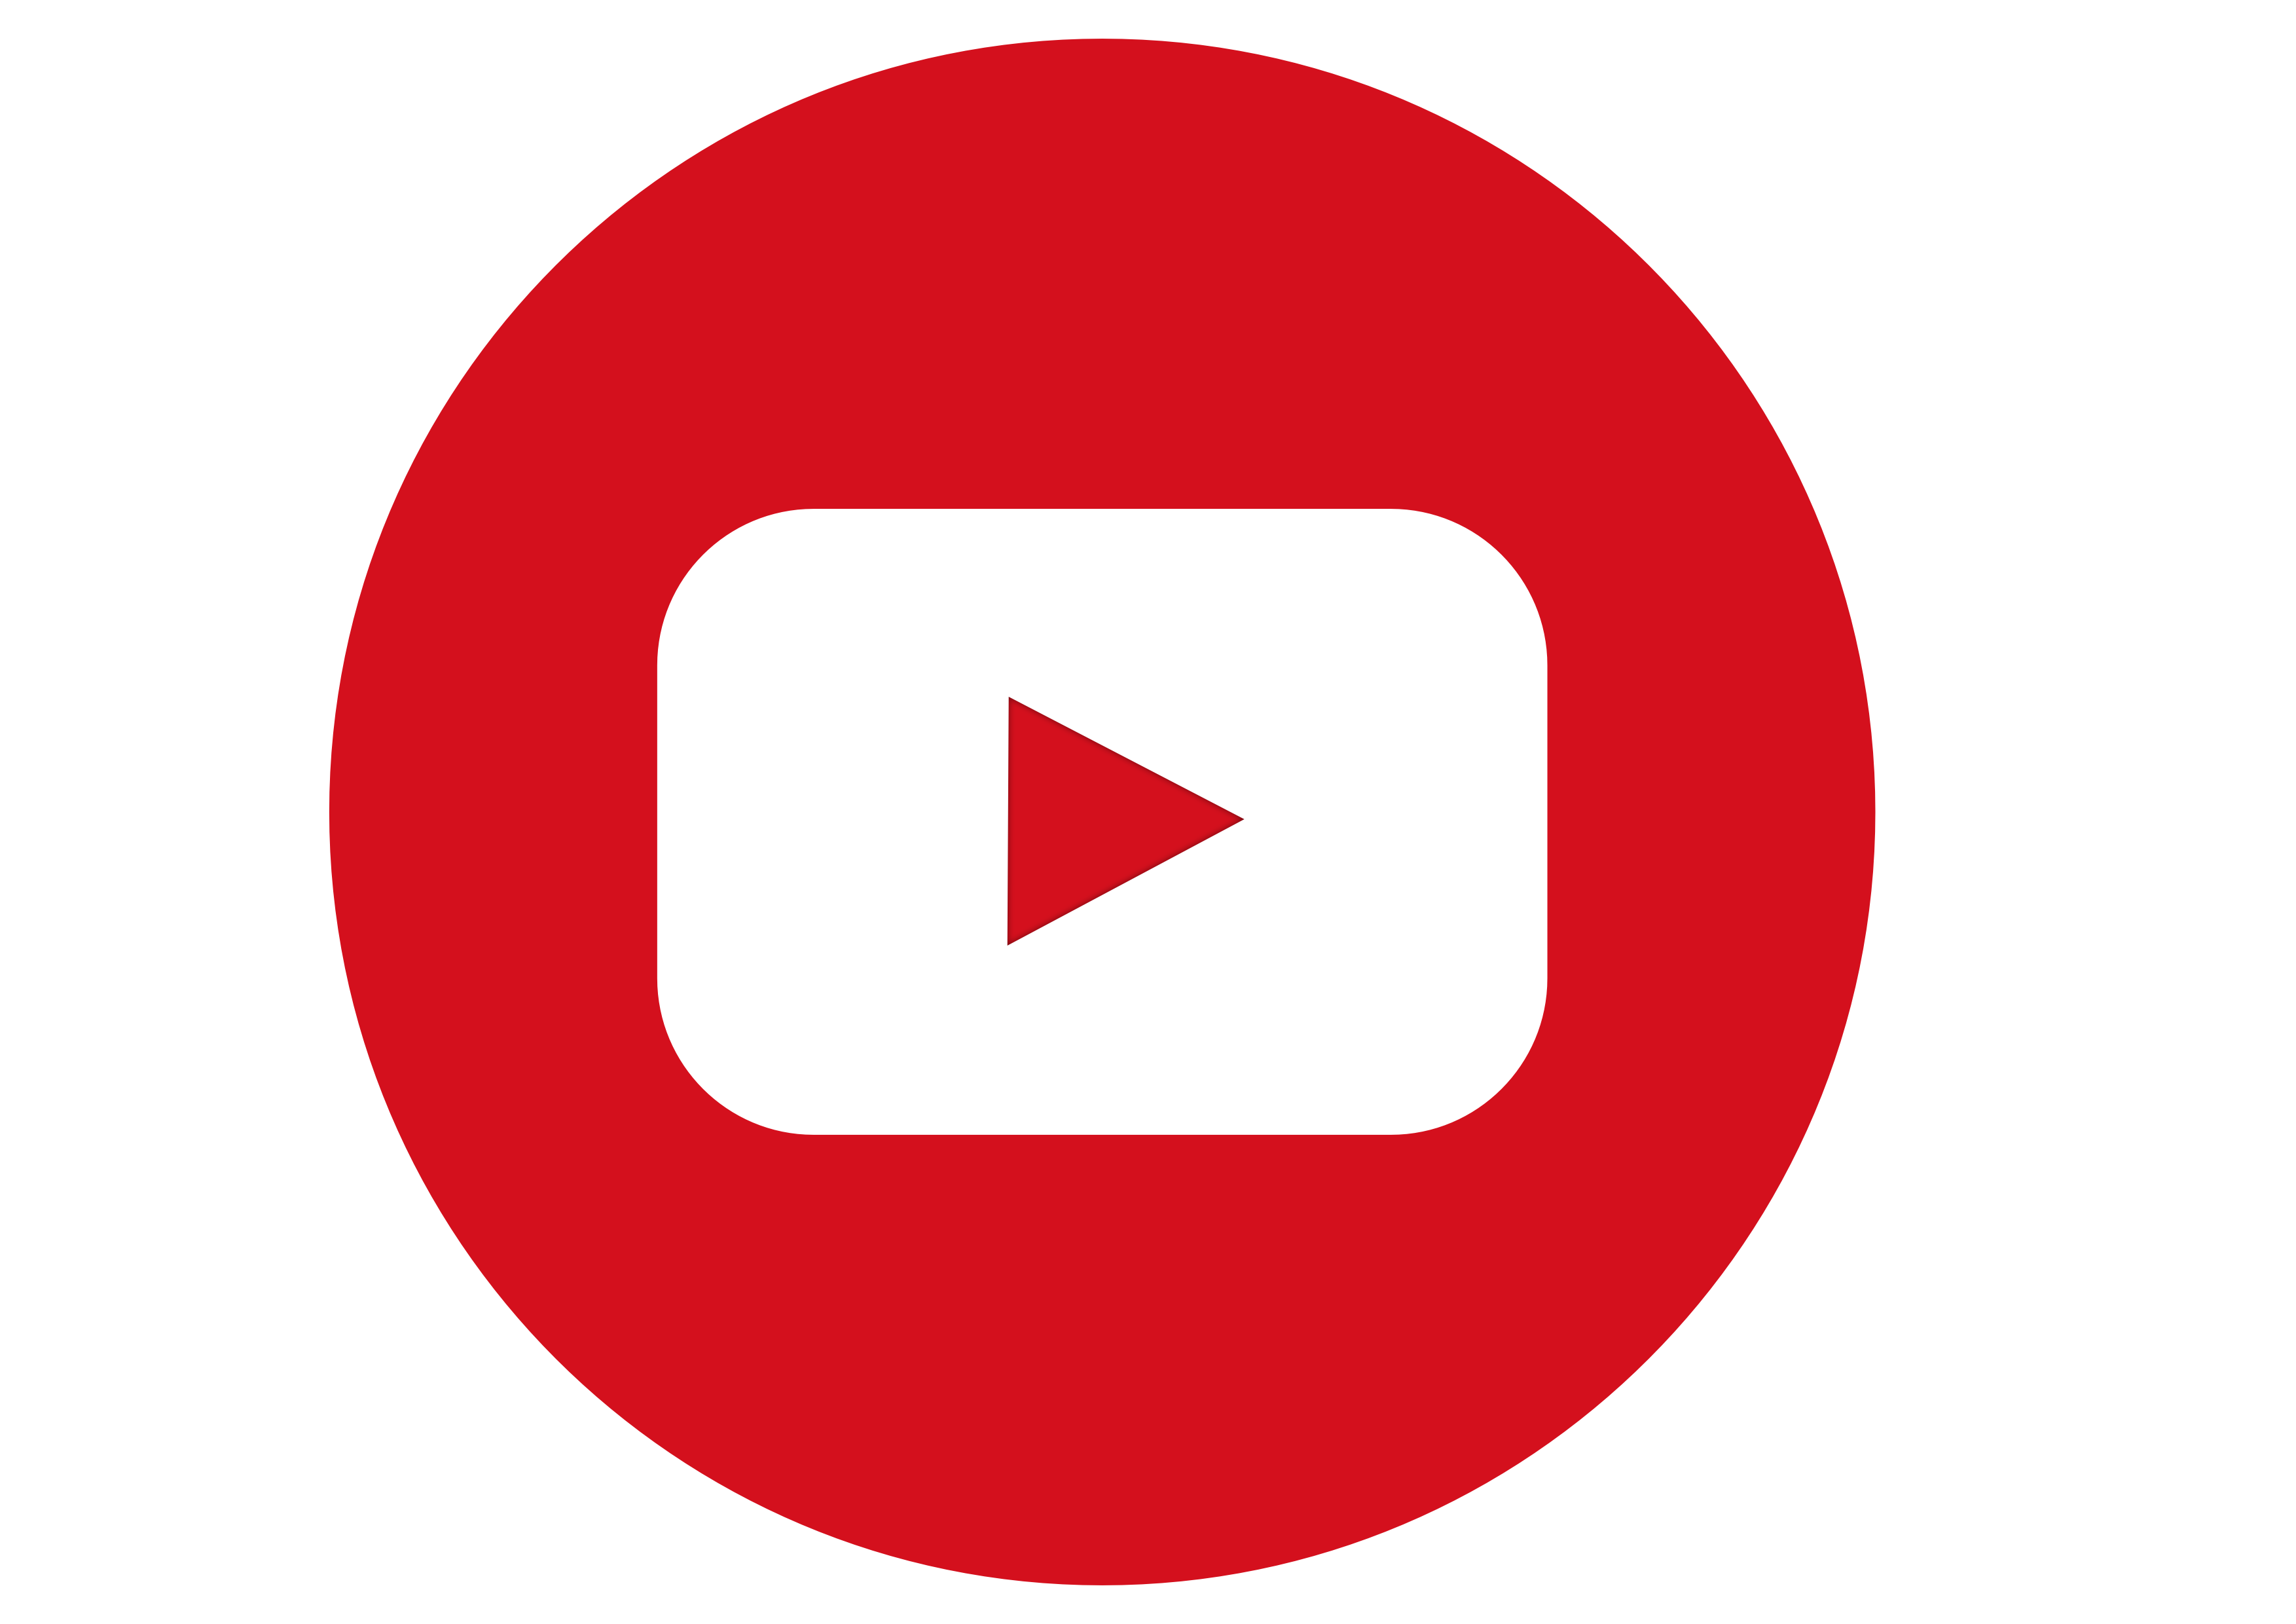 Logo Youtube Png Clipart #46025.